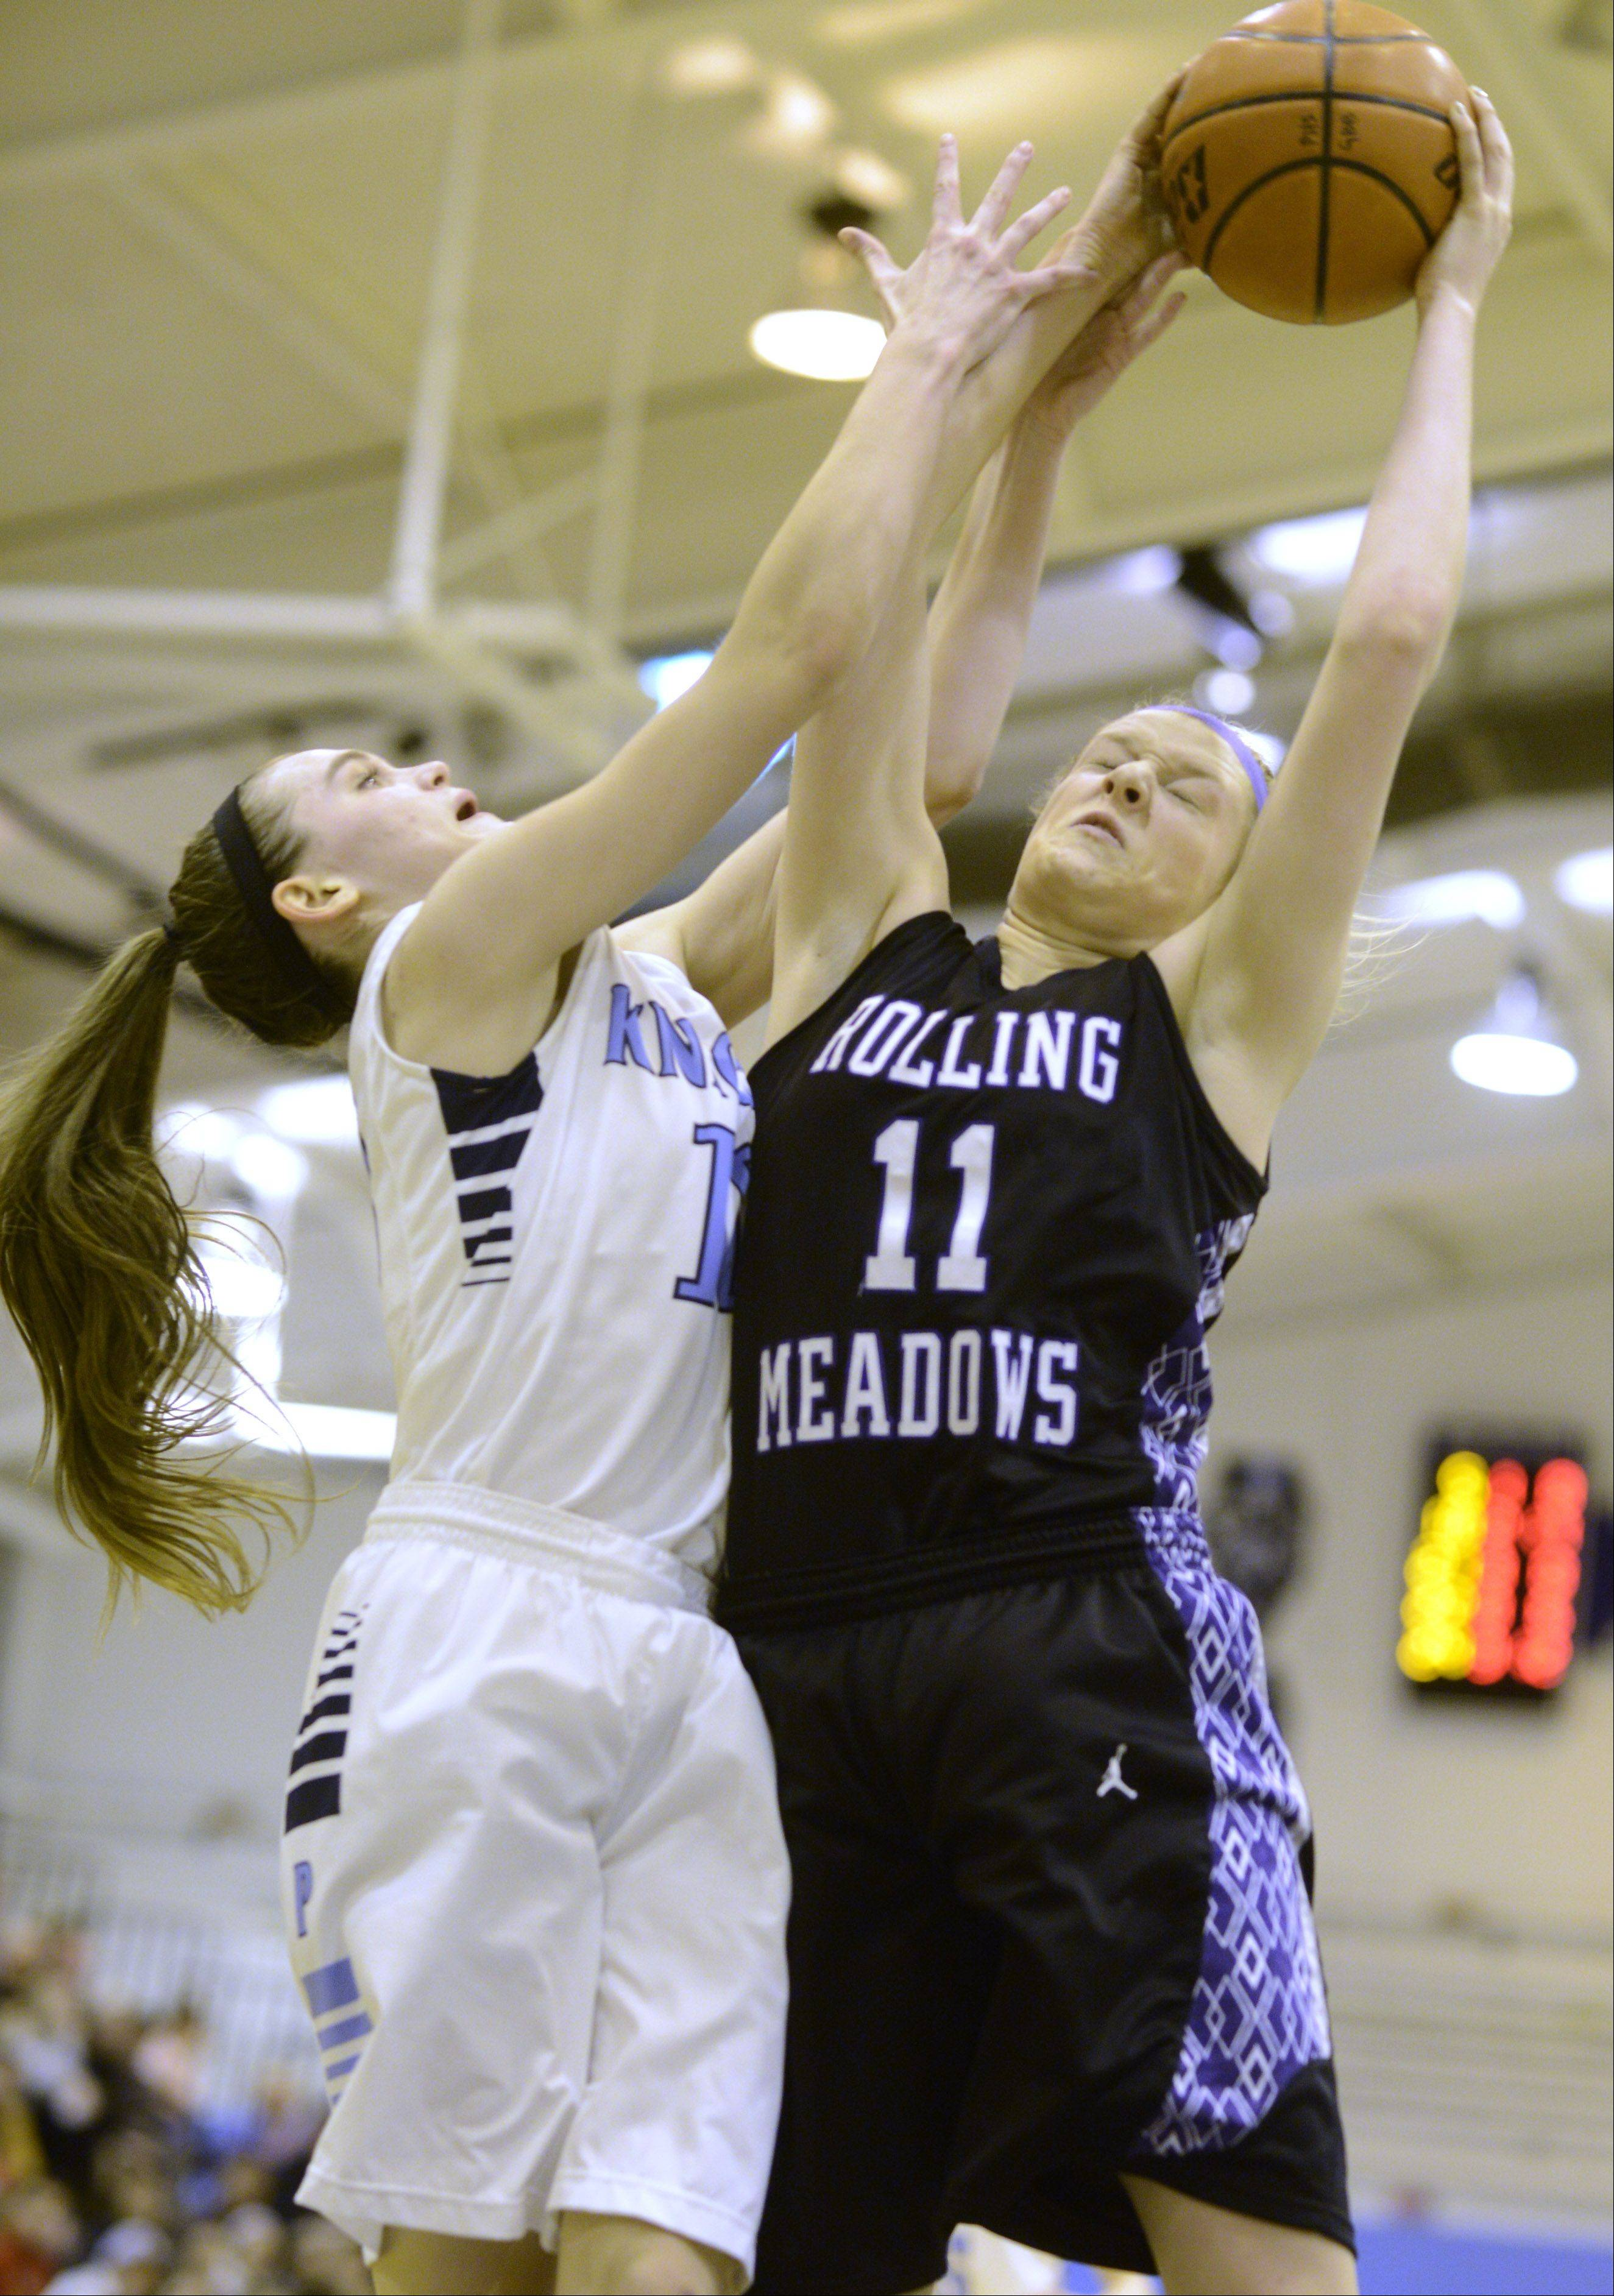 Prospect's Taylor Will, left, and Roling Meadows' Jenny Vliet leap for a rebound during Saturday's game.